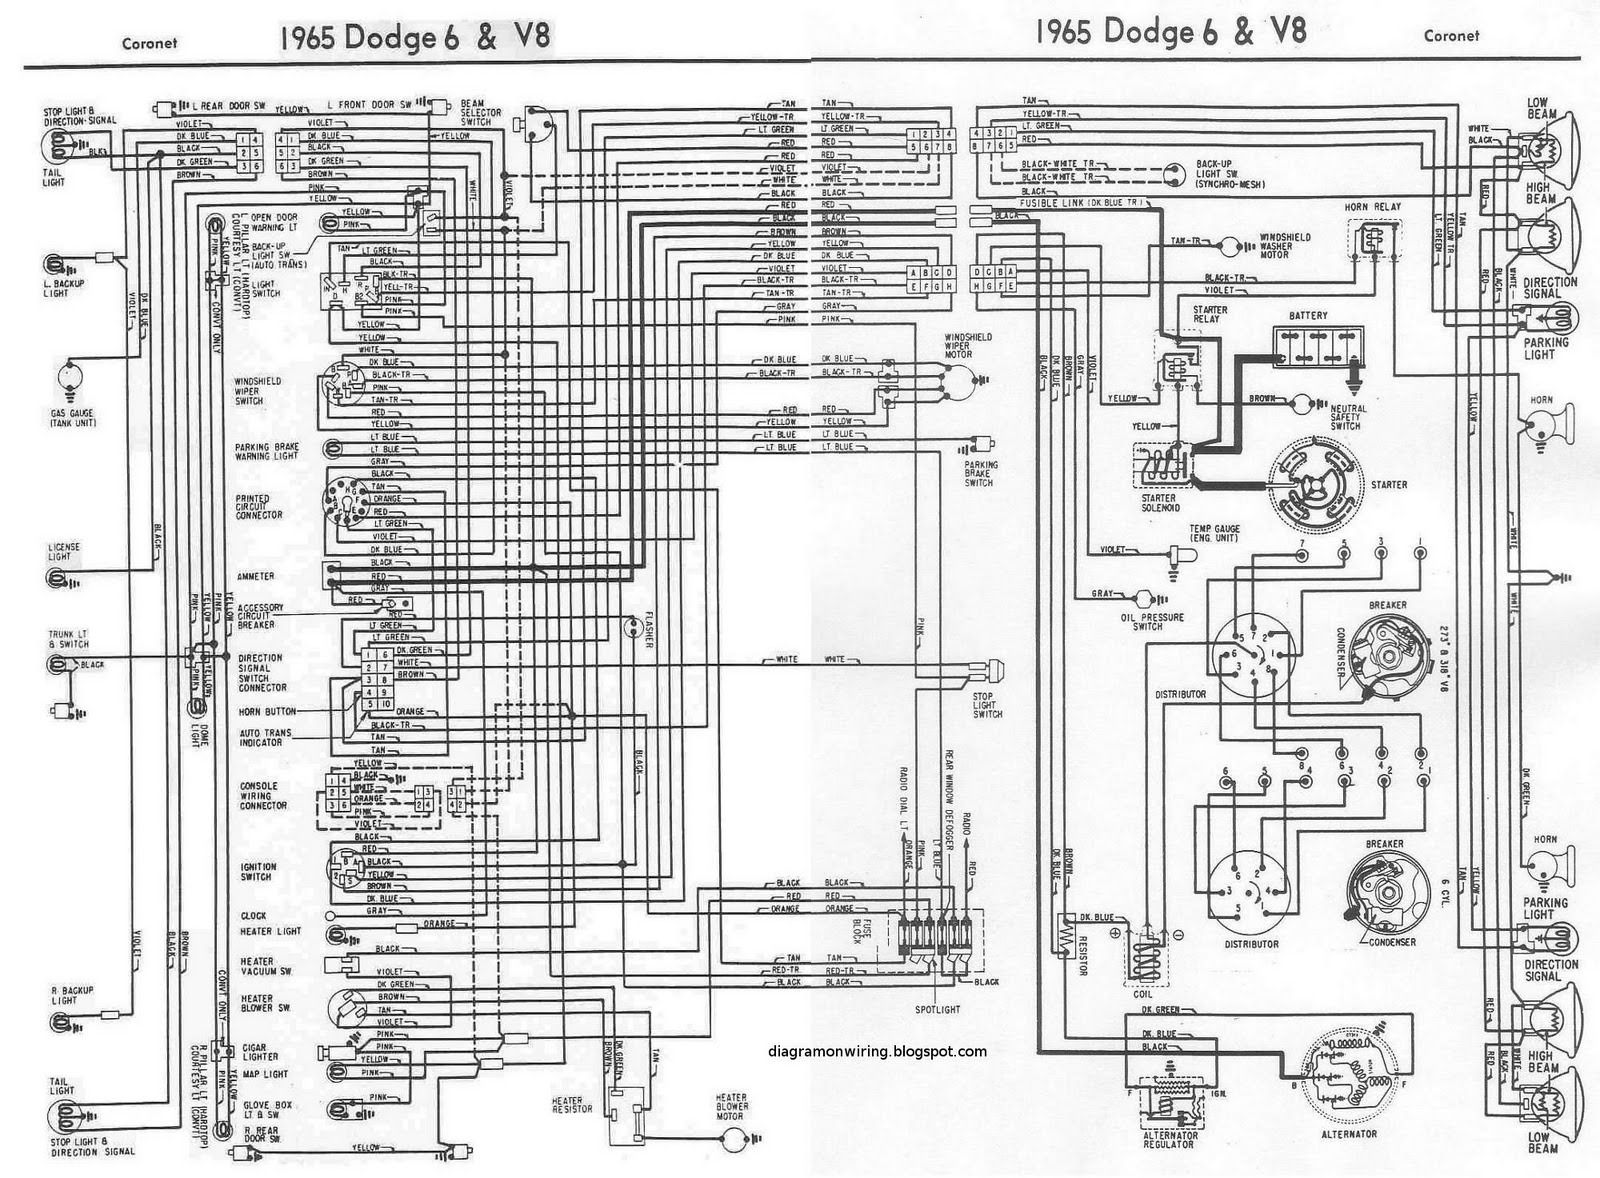 wiring diagram for 1966 dodge coronet wiring diagram article review 1965 dodge coronet wiring diagram source 1968 coronet engine  [ 1600 x 1178 Pixel ]